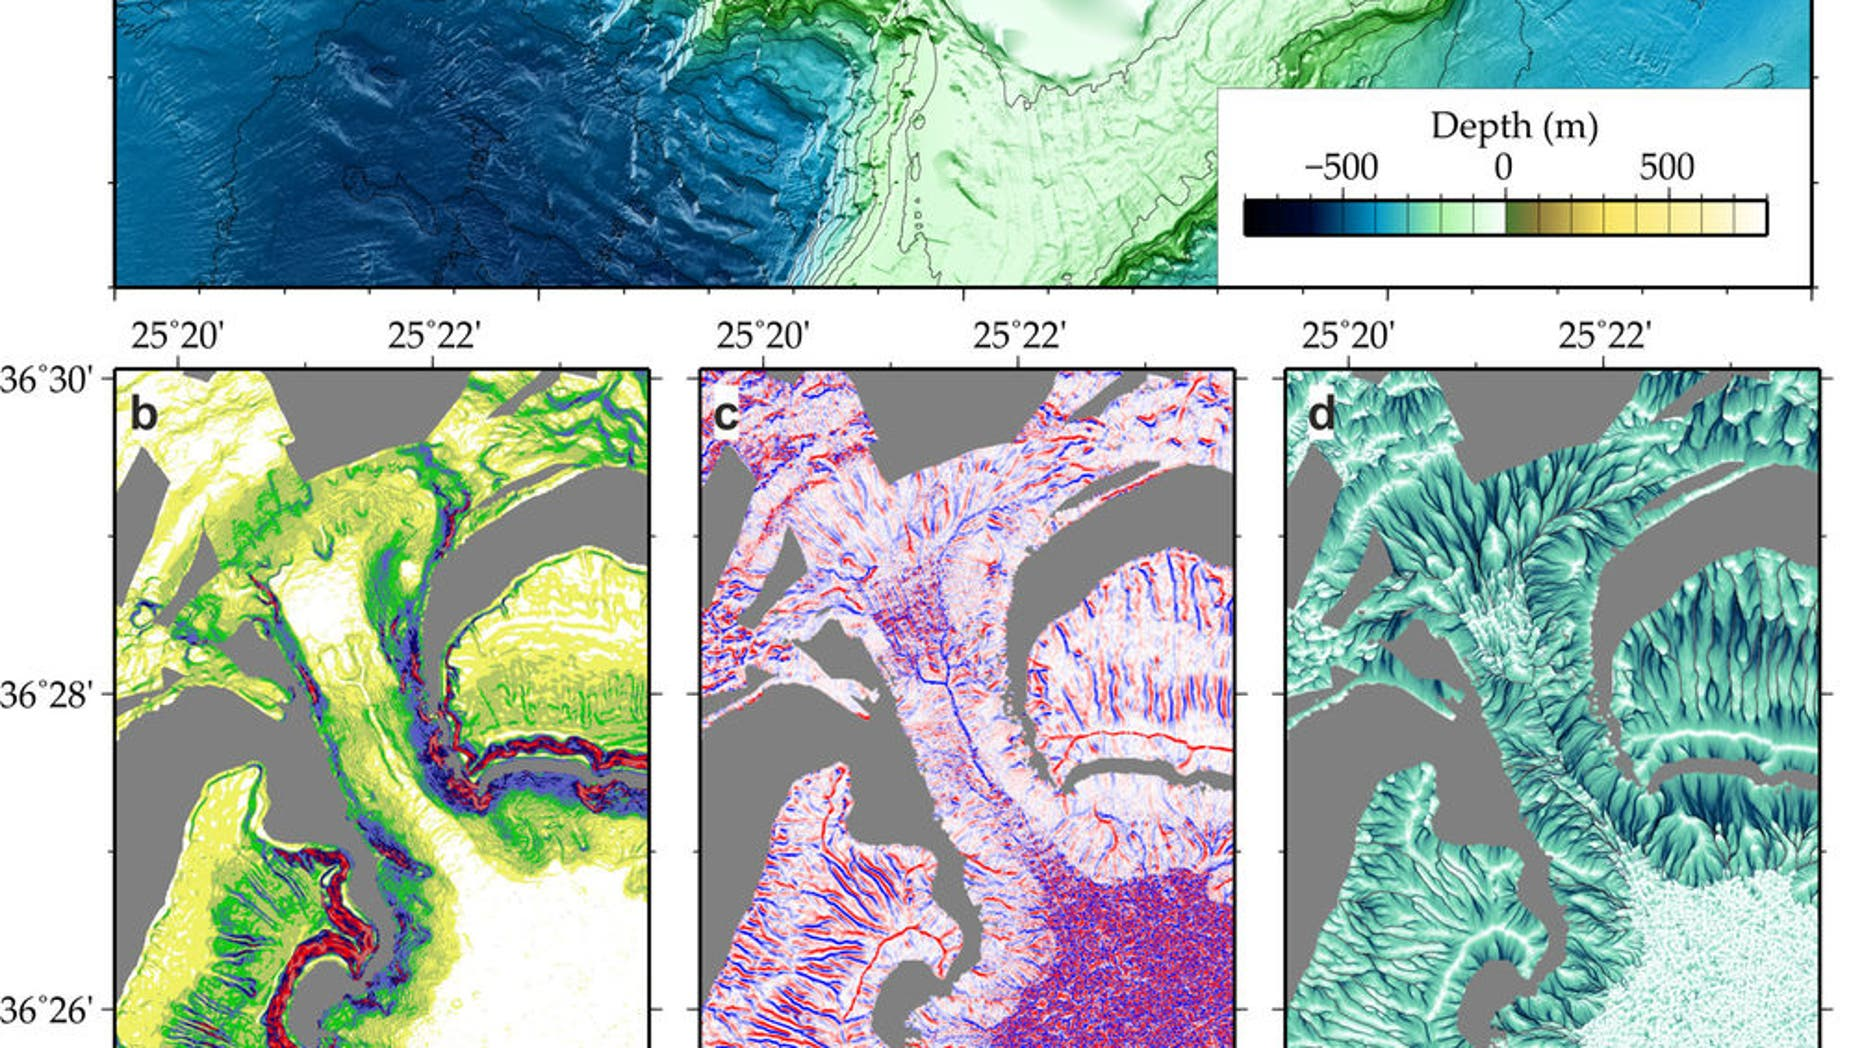 A combined topographic map of the Santorini volcanic field shows how the flow of volcanic material entered the sea via the northwest strait (orange box). (Nomikou P., M. Paulatto, L.M. Kalnins and D. Lampridou)